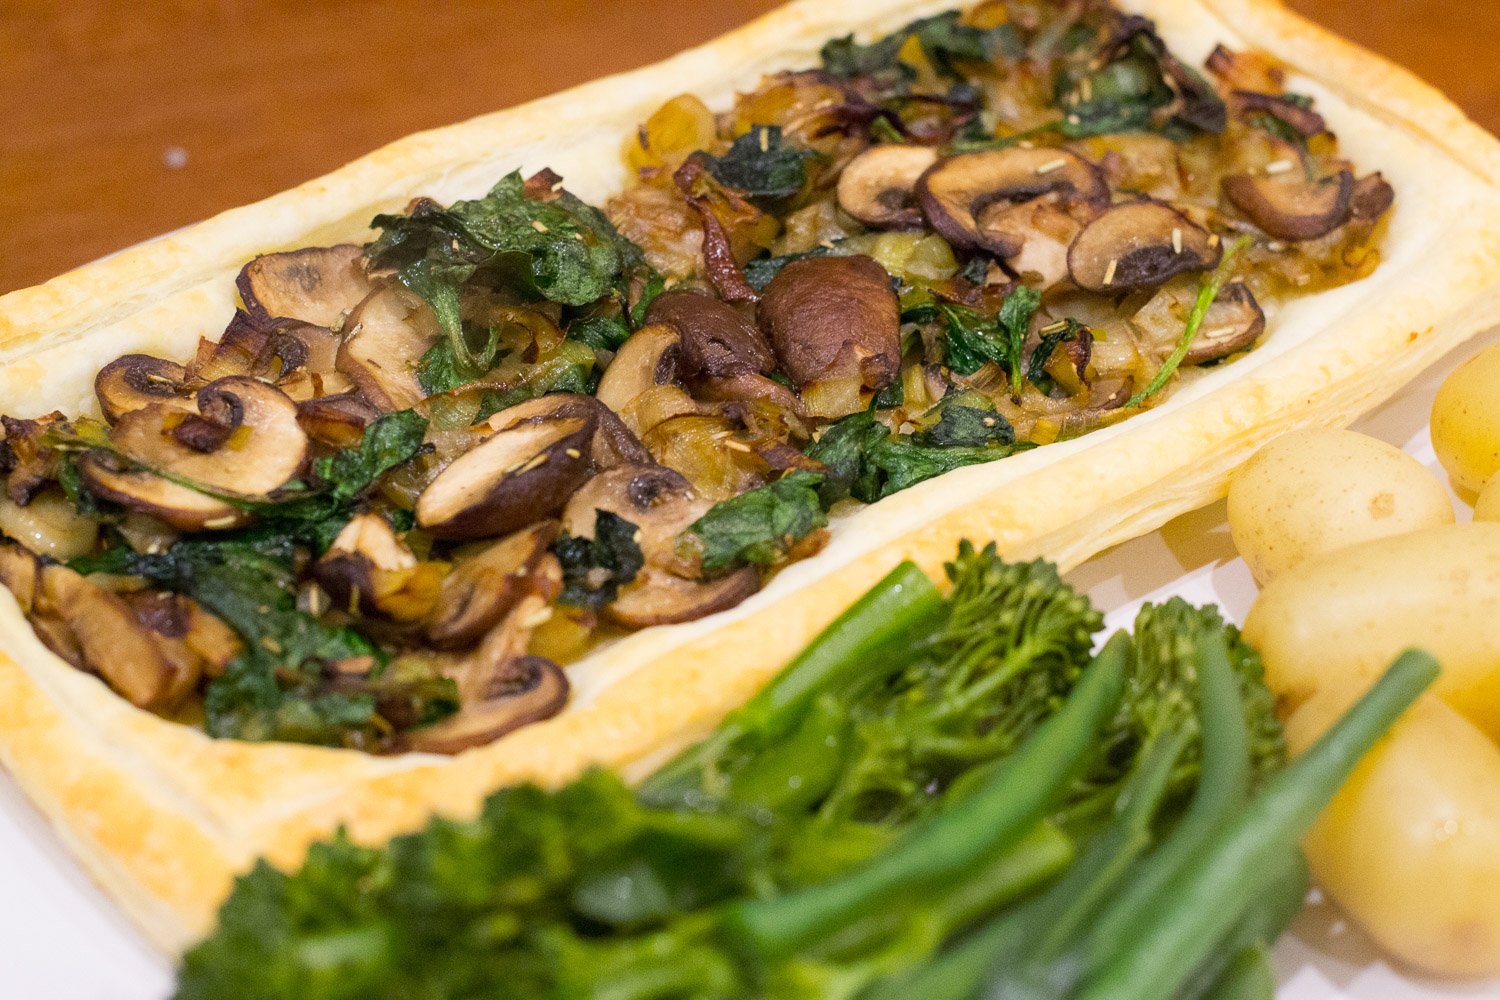 Veganuary: Vegan Leek, Mushroom and Spinach Tart